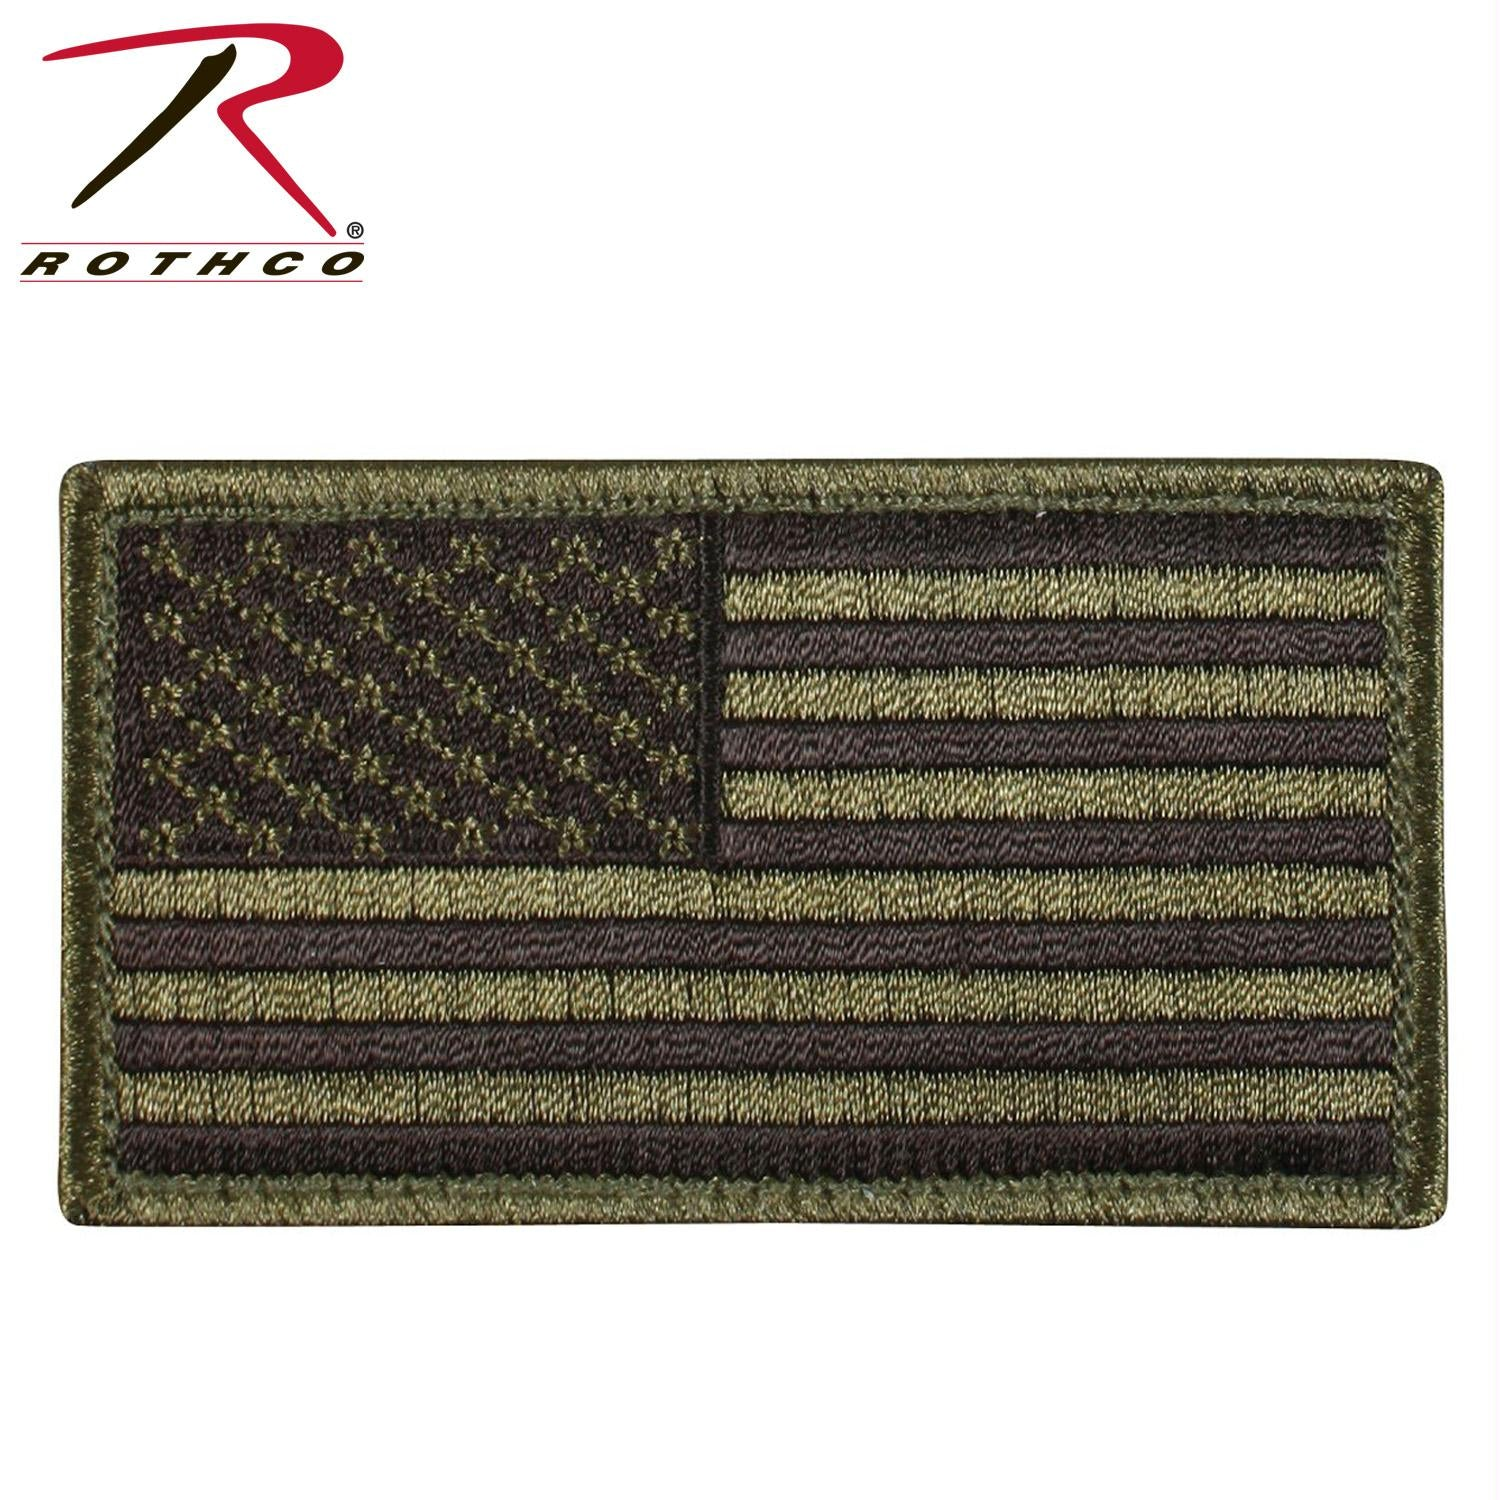 Rothco American Flag Patch - Olive Drab / Black / Normal / Bulk Packaging